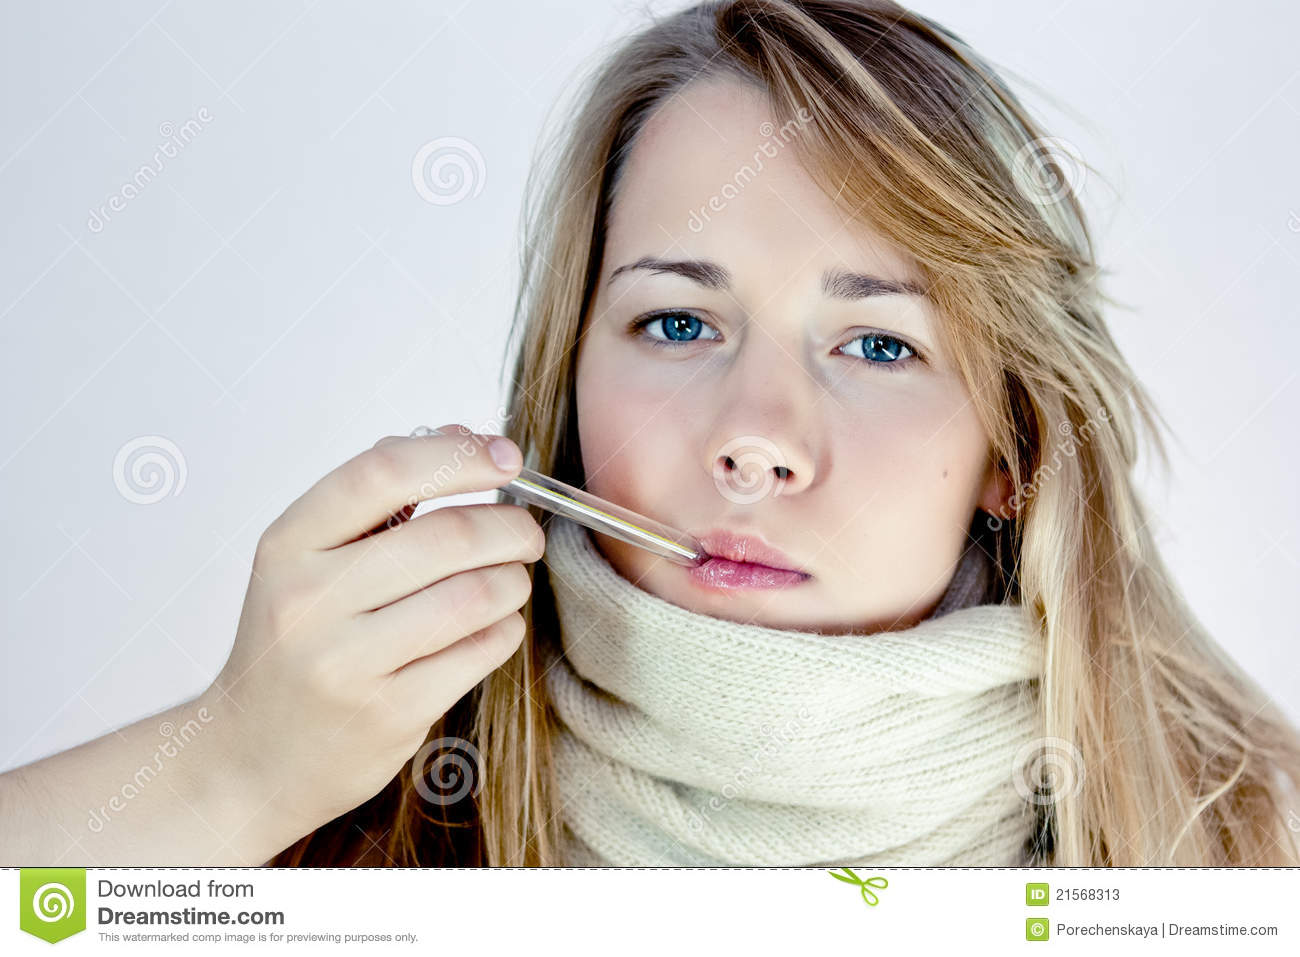 A simple girl with a thermometer stock photos image 21568313 - Simple girls photo for facebook ...